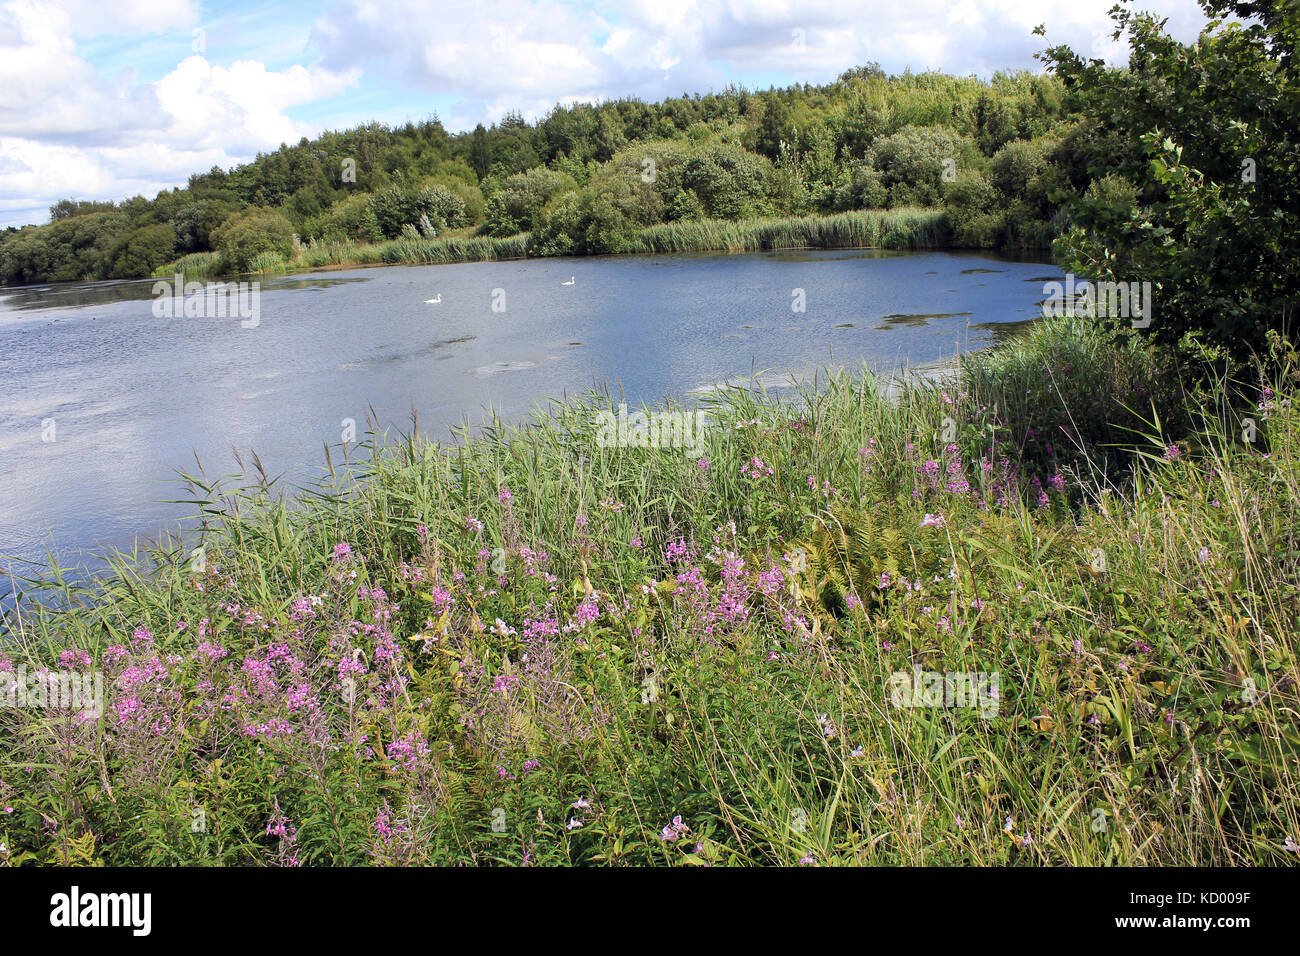 Pearsons Flash - part of Wigan Flashes Nature Reserve - Stock Image